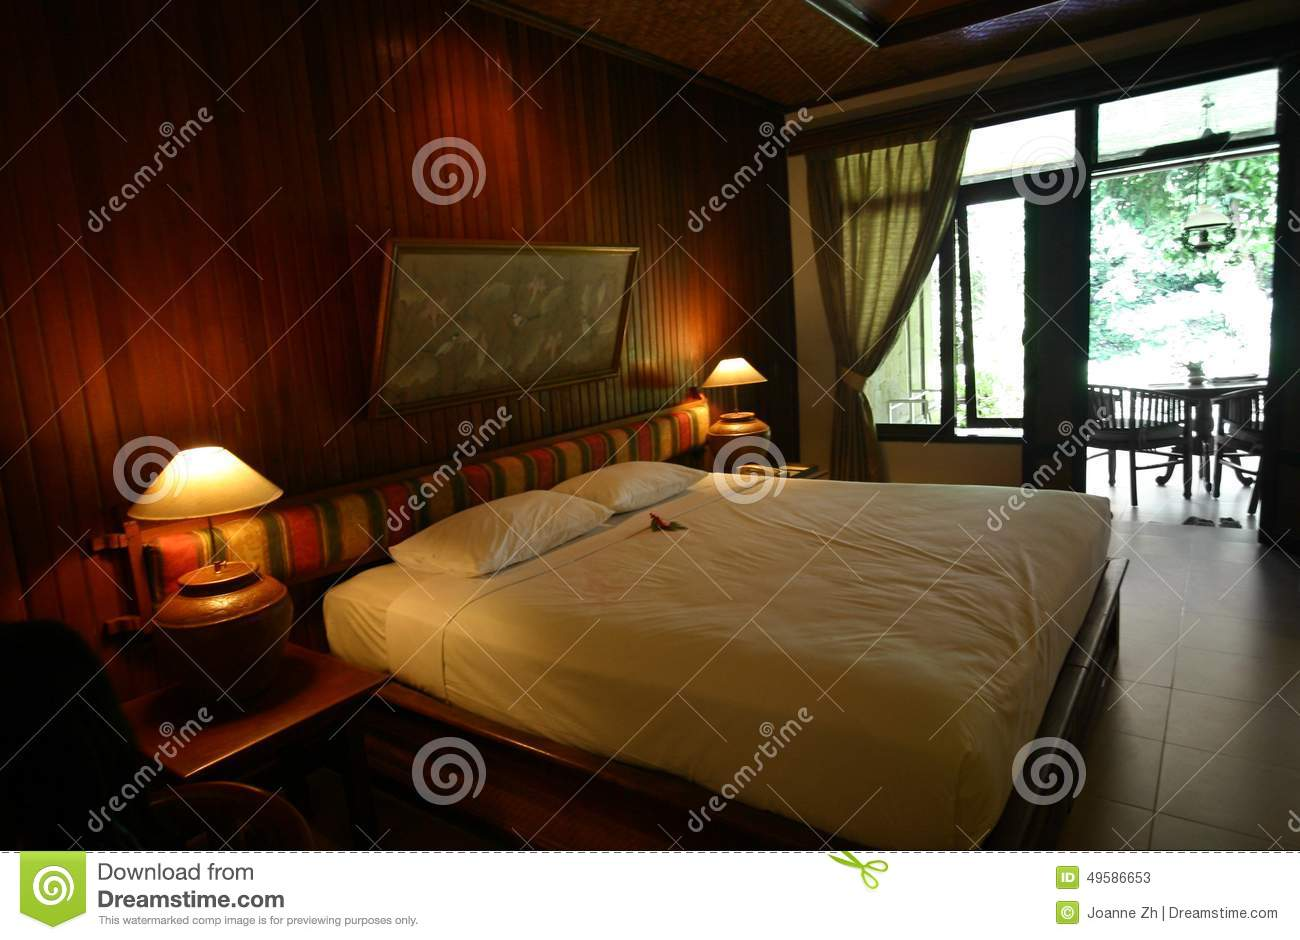 Nice Interior Design For Bedroom Walls #8: Bali-hotel-bedroom-style-decor-photograph-showing-interior-traditional-resort-indonesia-southeast-asia-walls-49586653.jpg